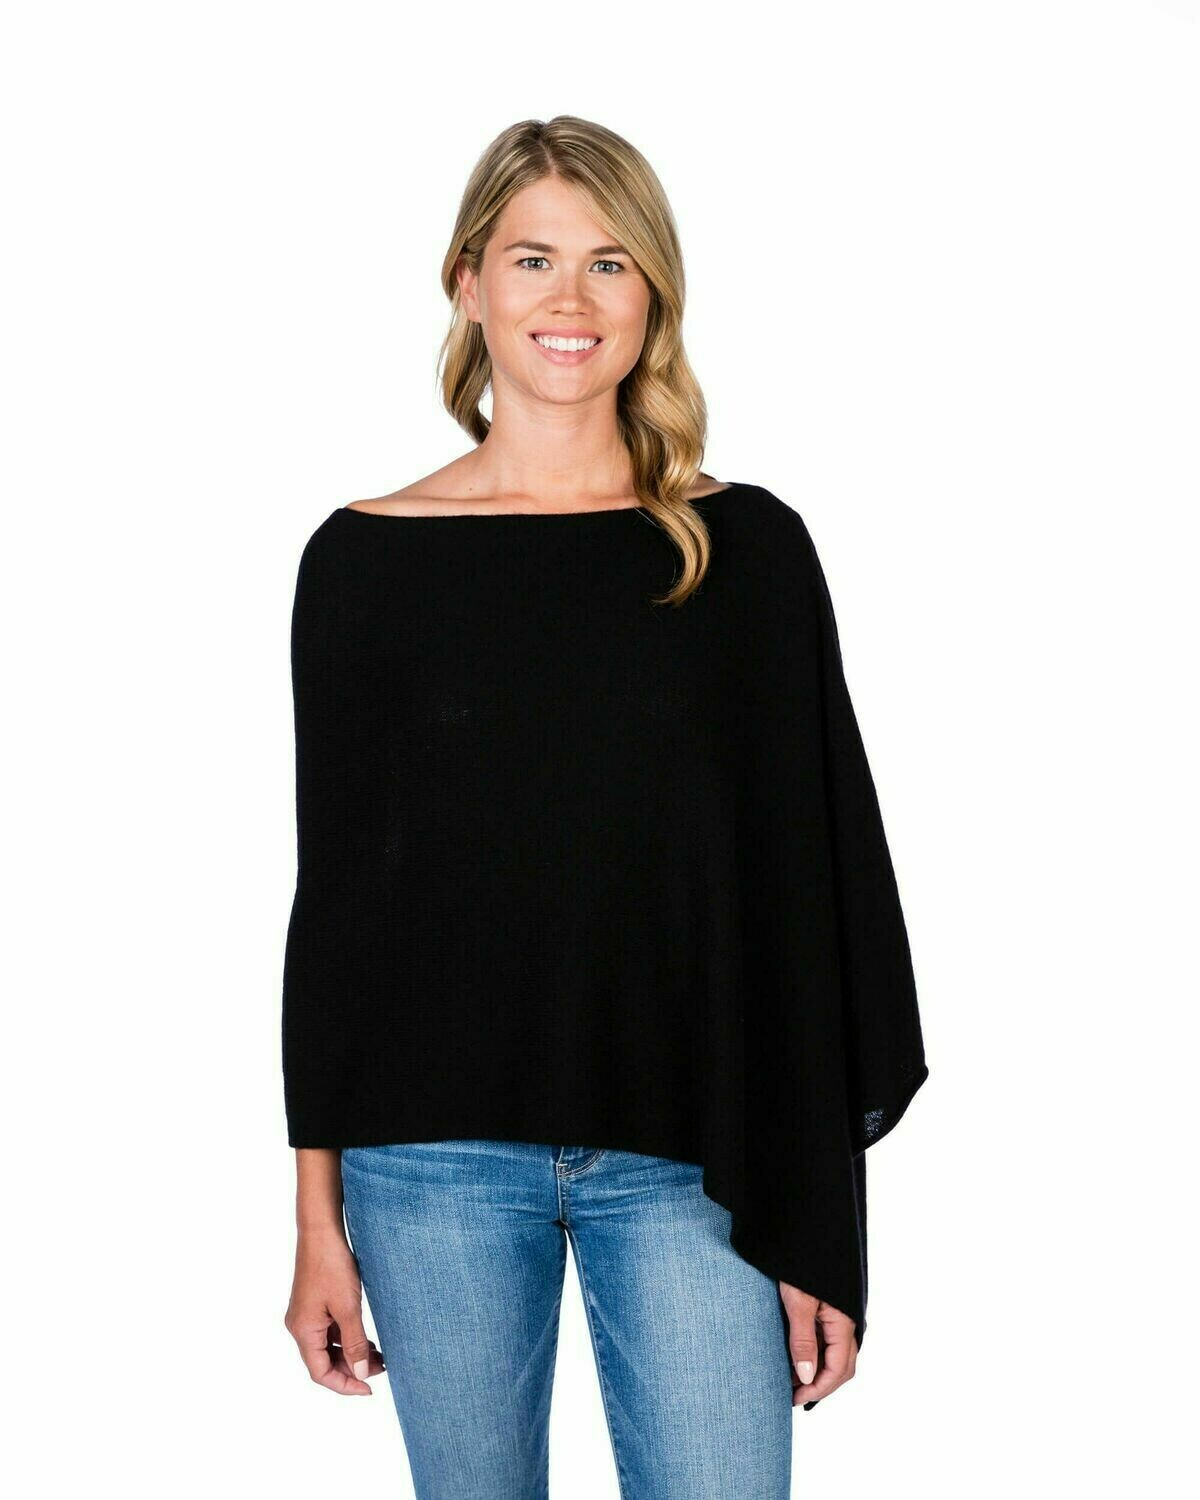 Jackie Z 100% Cashmere Dress Topper Poncho in Ebony